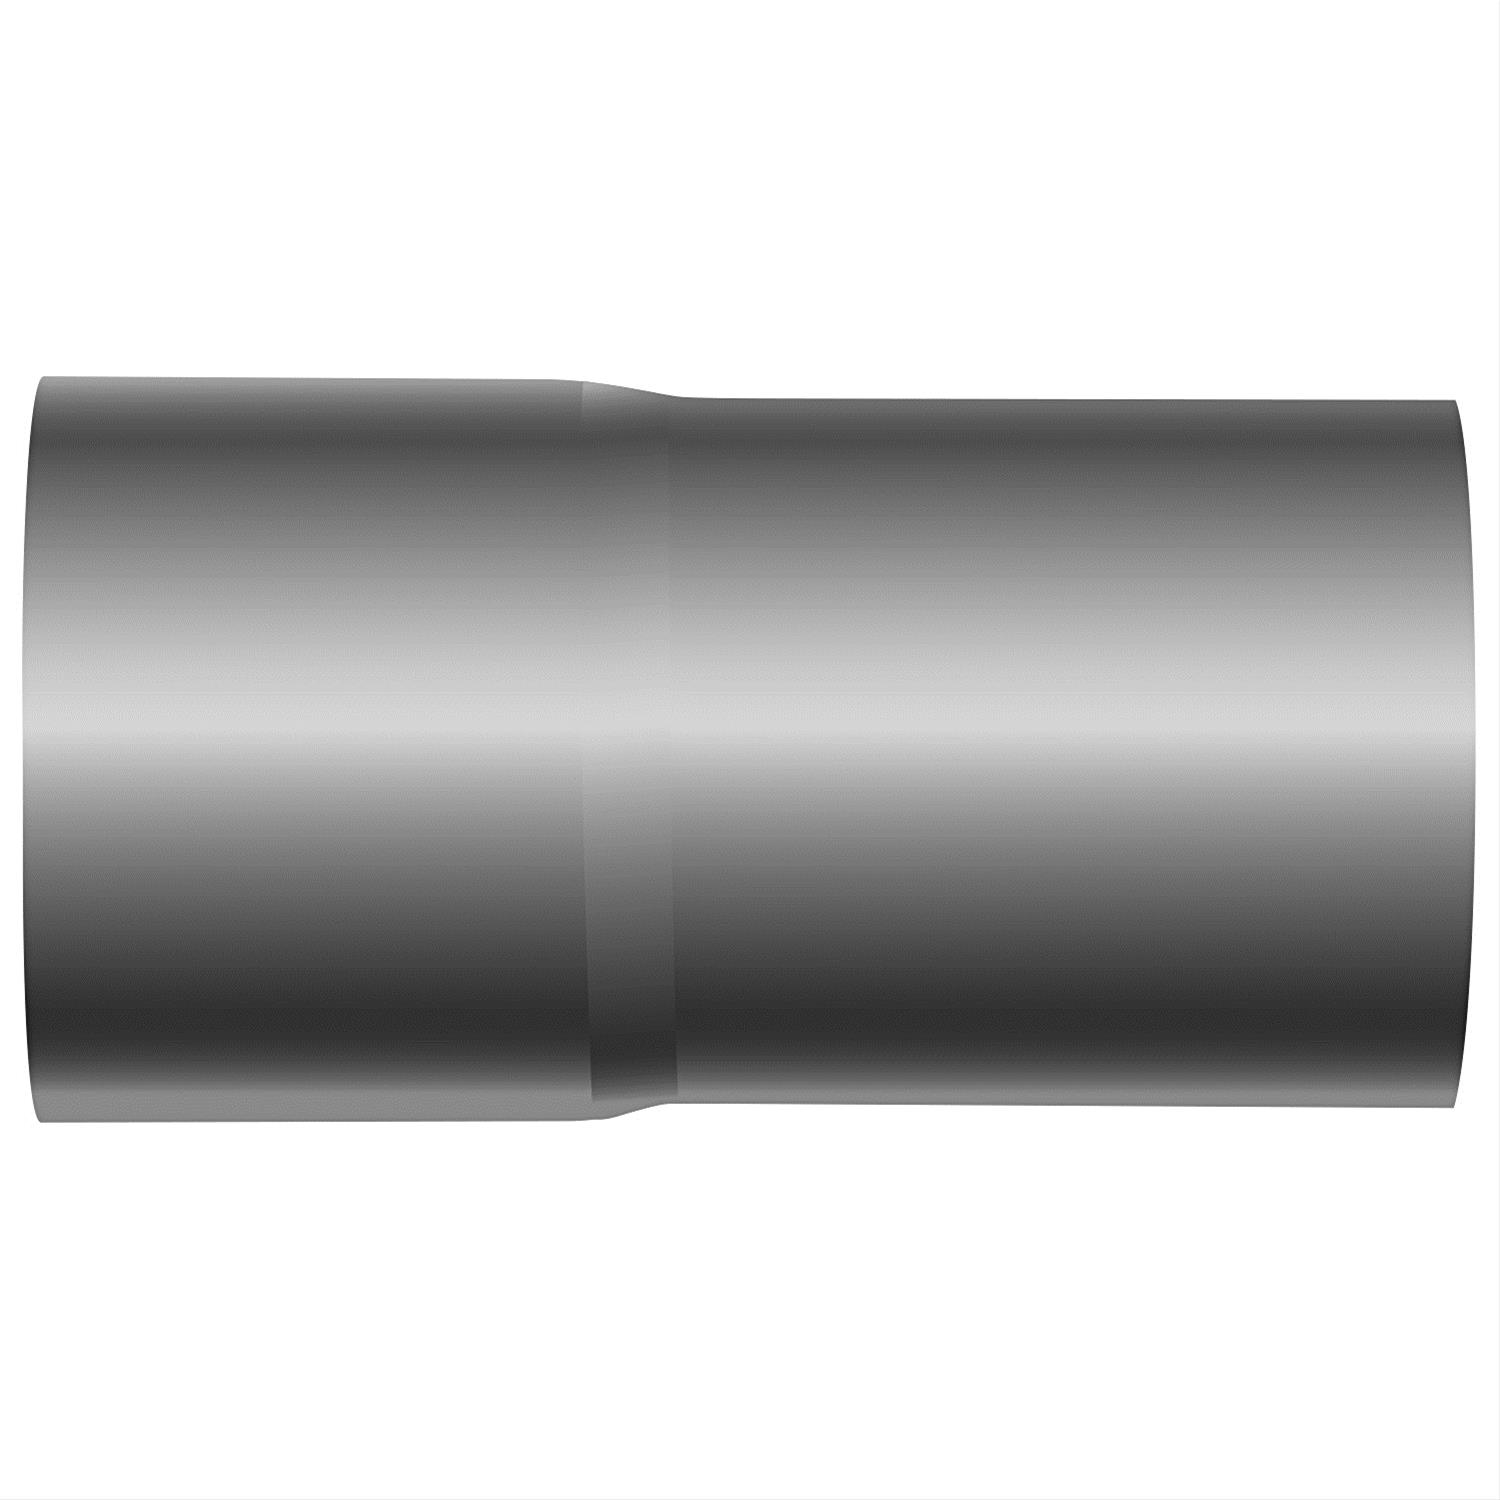 AP Exhaust 23003 Exhaust Pipe Connector